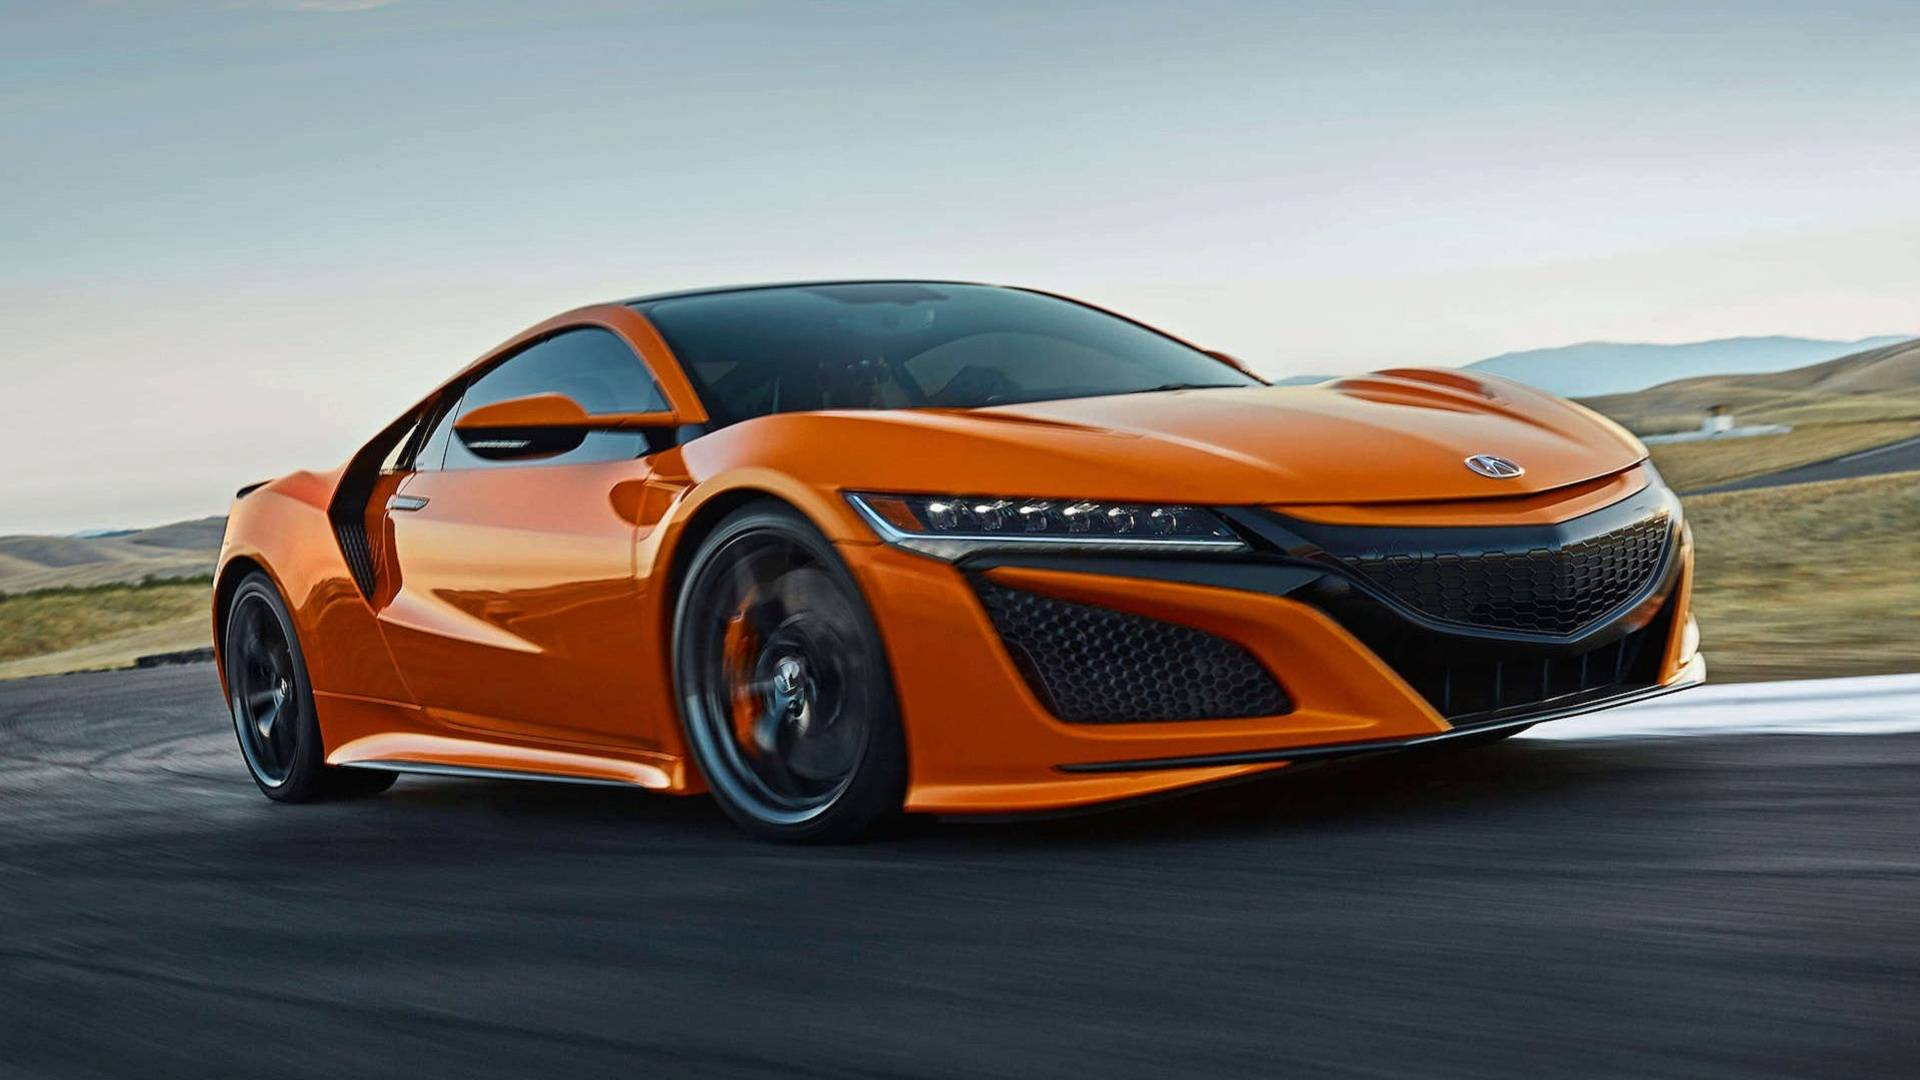 Honda Supercar Price >> 2019 Acura NSX is Stiffer, Orange, $1,500 More Expensive Than Before - autoevolution